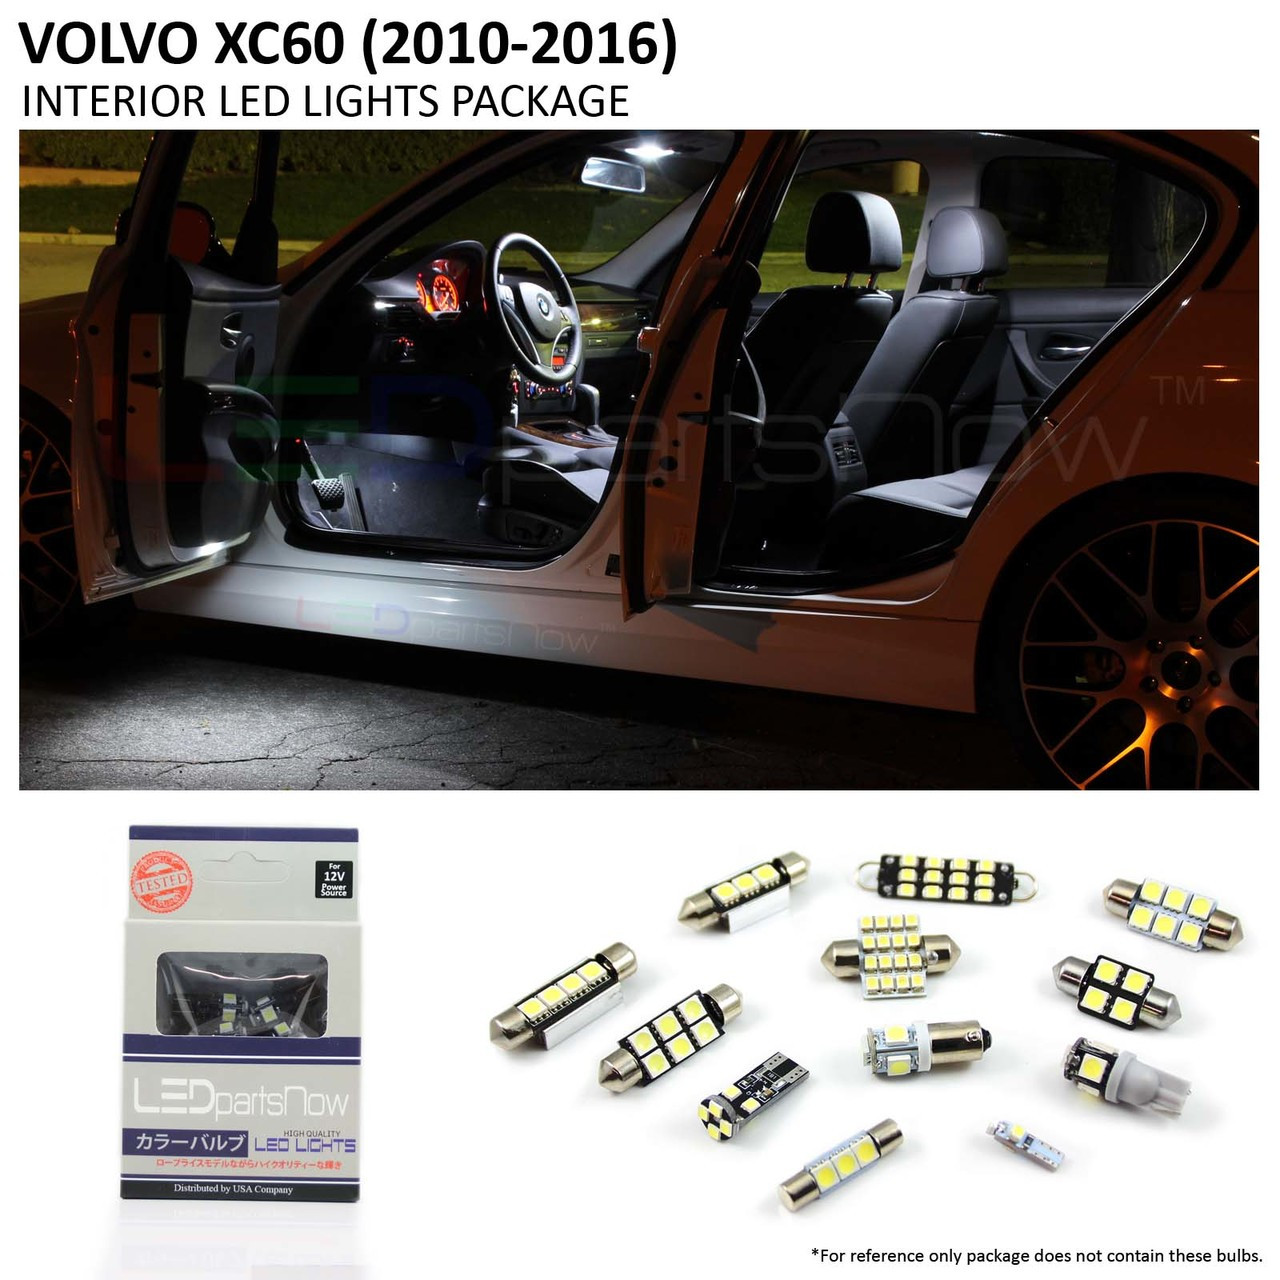 2010 2016 Volvo Xc60 Interior Led Lights Package